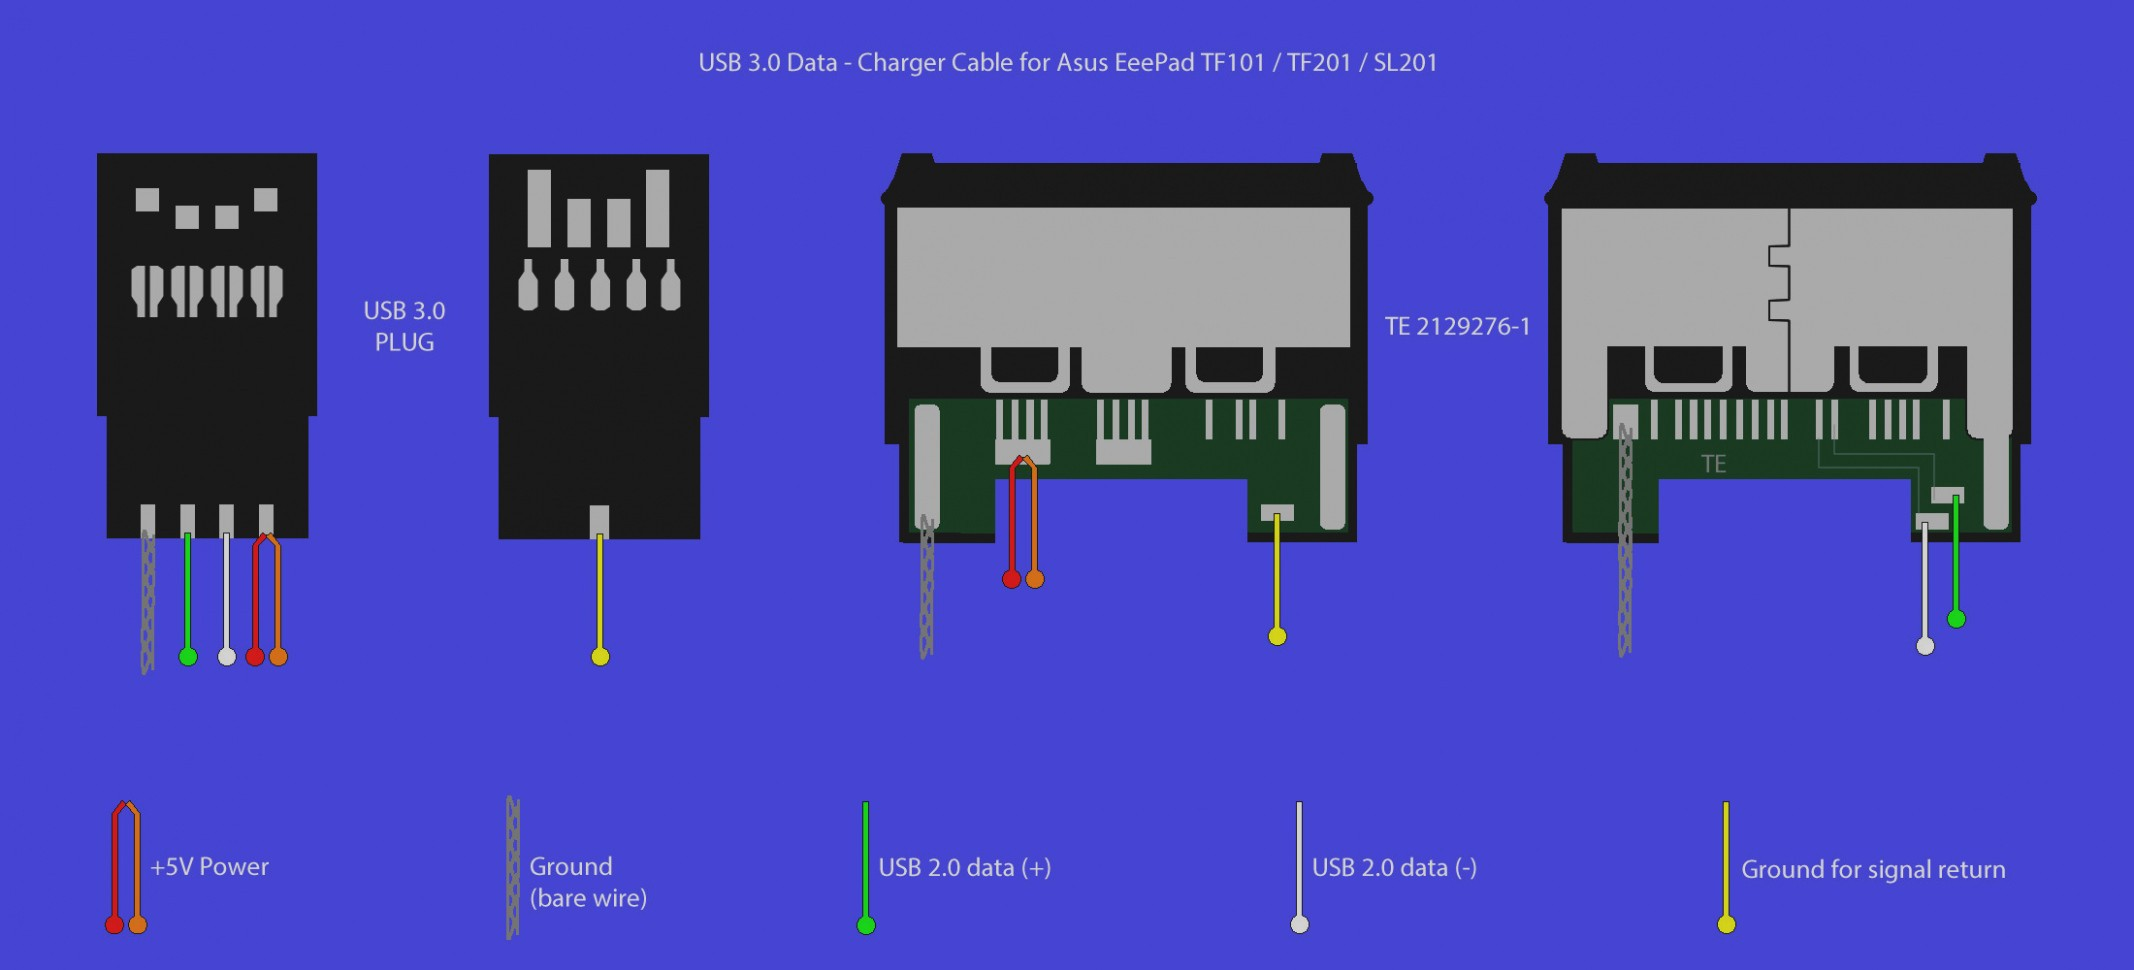 Wiring Diagram for Usb Charger Best Awesome Micro Usb Charging Port Wiring  Diagram Charger Cable Best